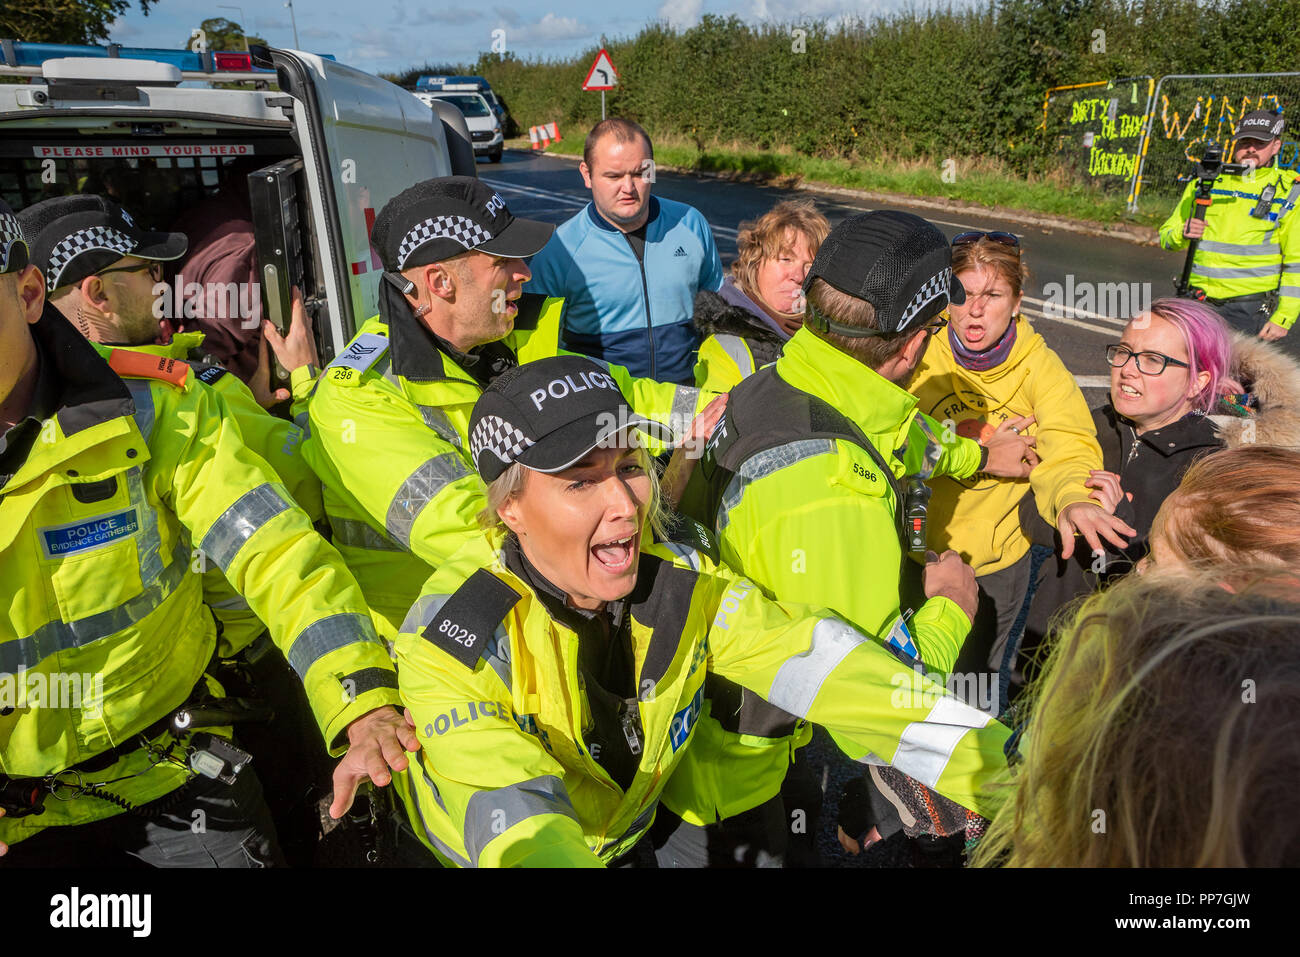 little-plumpton-near-blackpool-uk-24th-september-2018-anti-fracking-demonstration-at-the-cuadrilla-preston-new-road-shale-gas-site-transport-that-arrived-at-the-cuadrilla-site-in-the-early-hours-was-challenged-by-protestors-as-it-left-it-was-believed-one-protestor-was-arrested-credit-stephen-bellalamy-live-news-PP7GJW.jpg